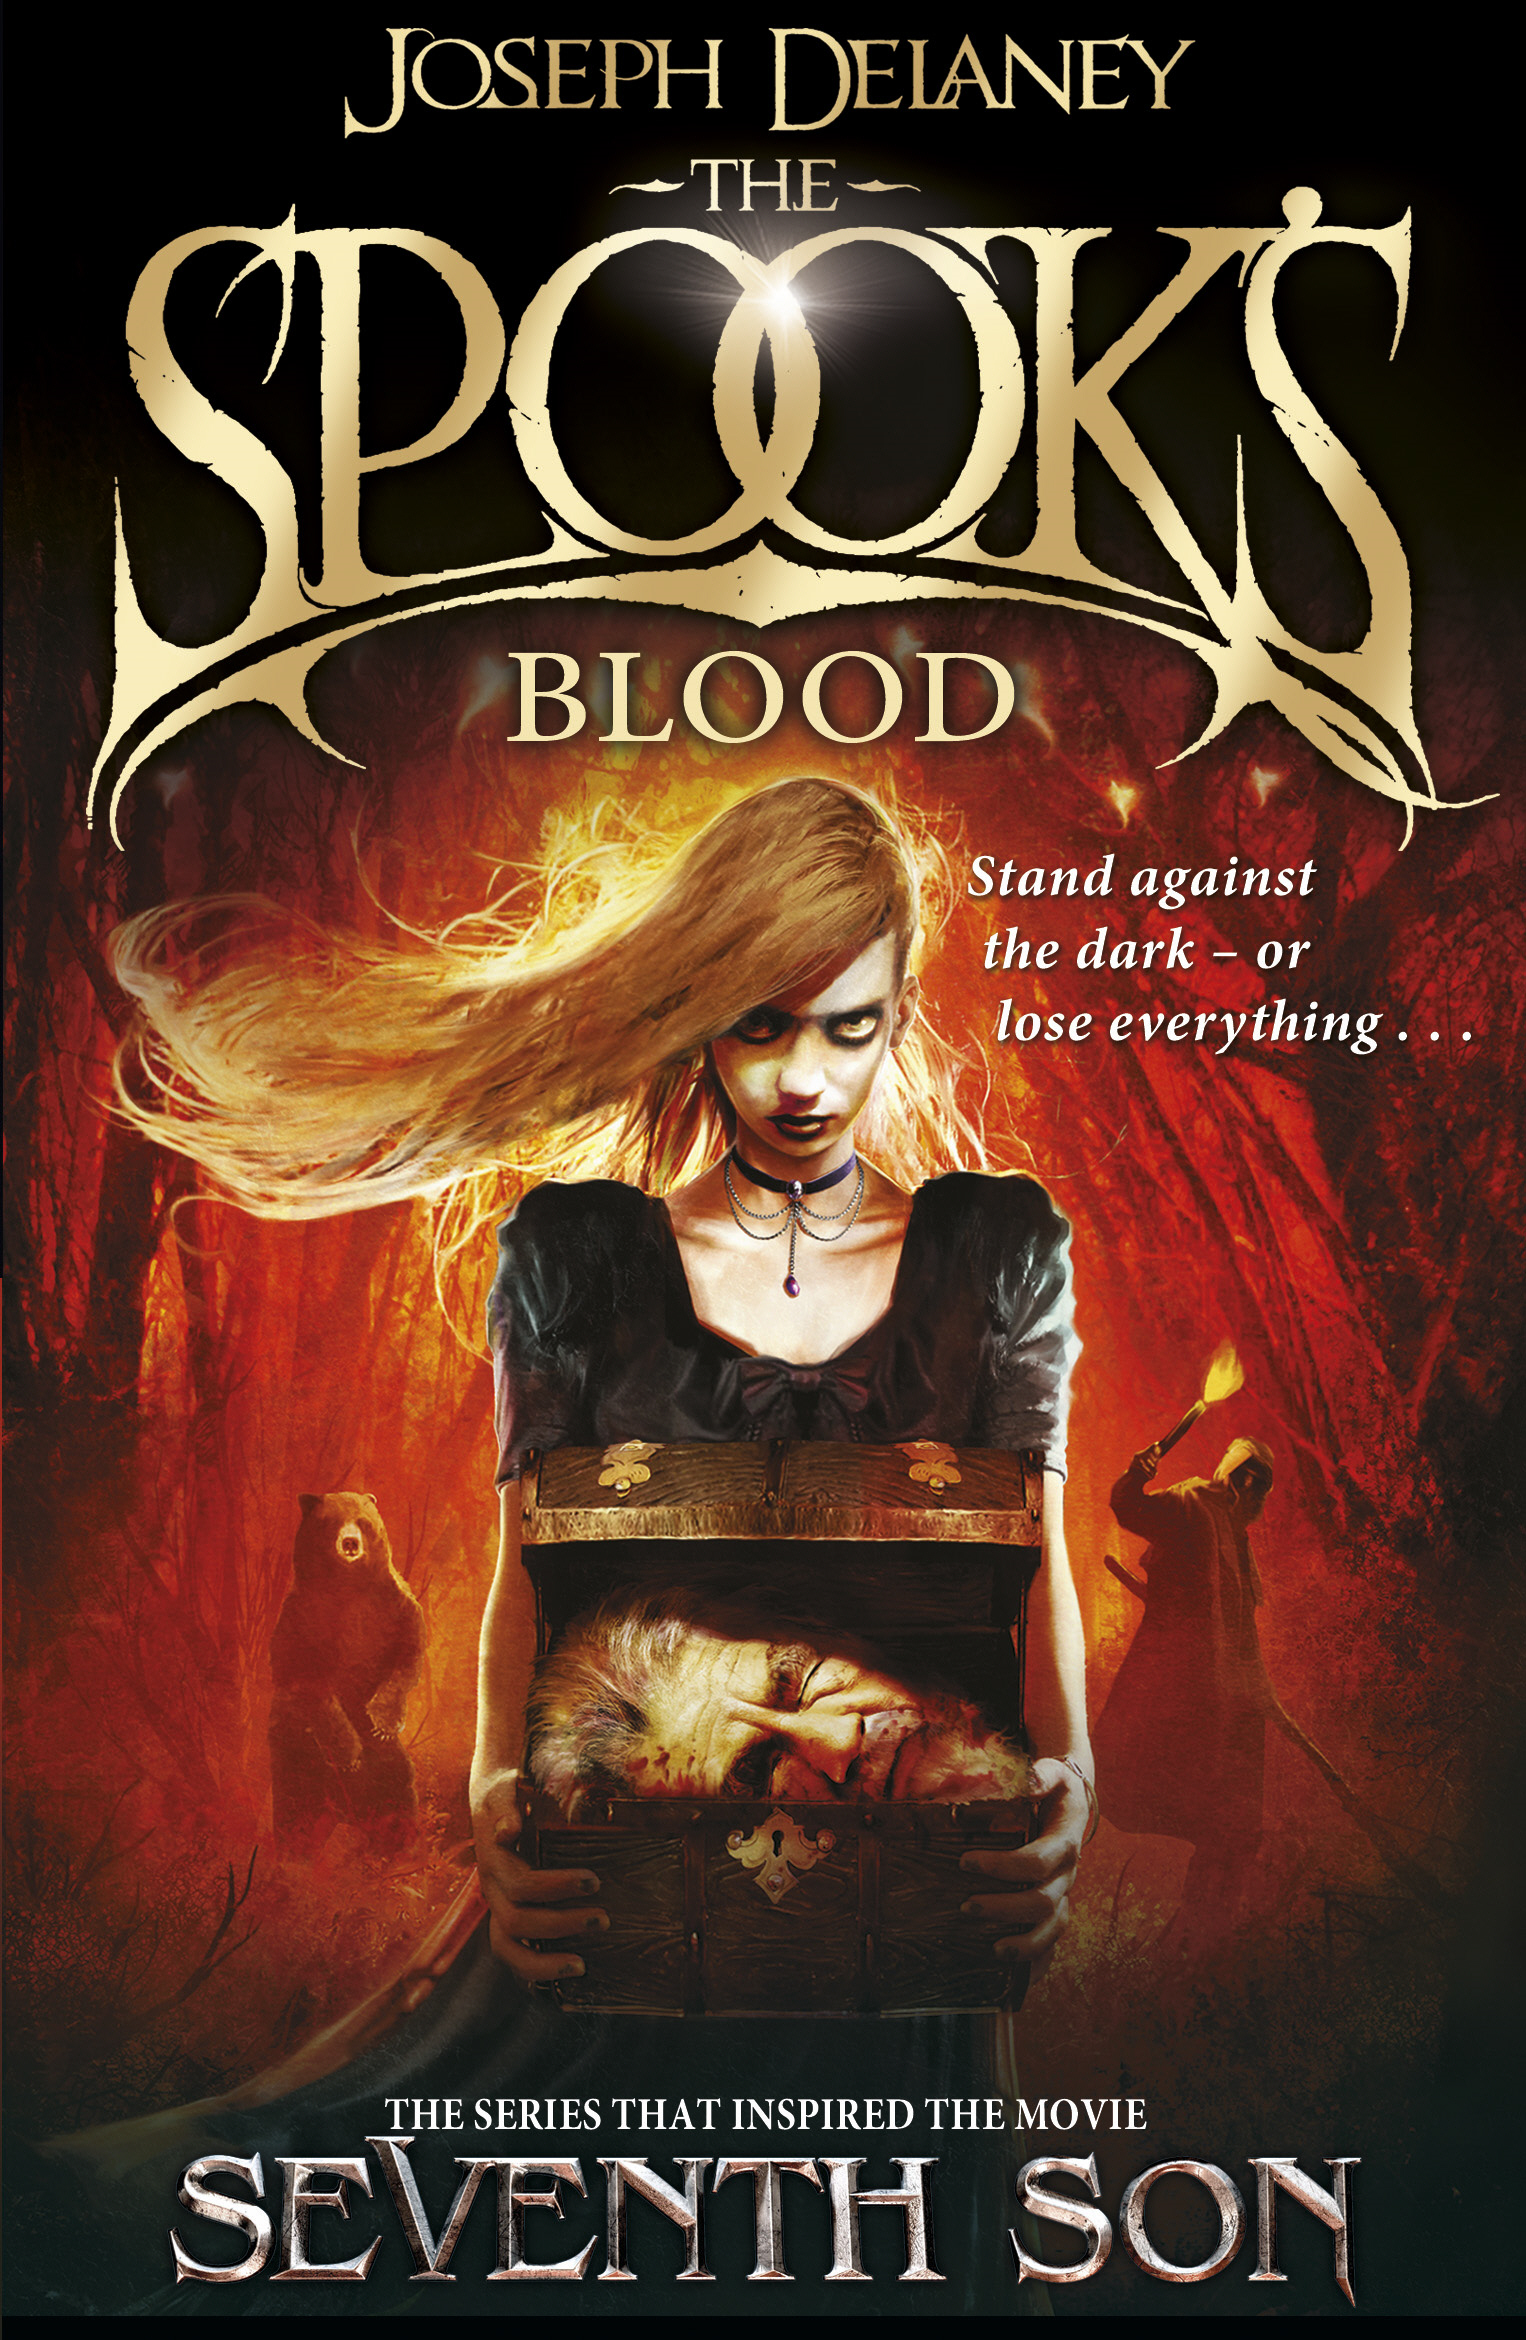 The Spook's Blood Book 10